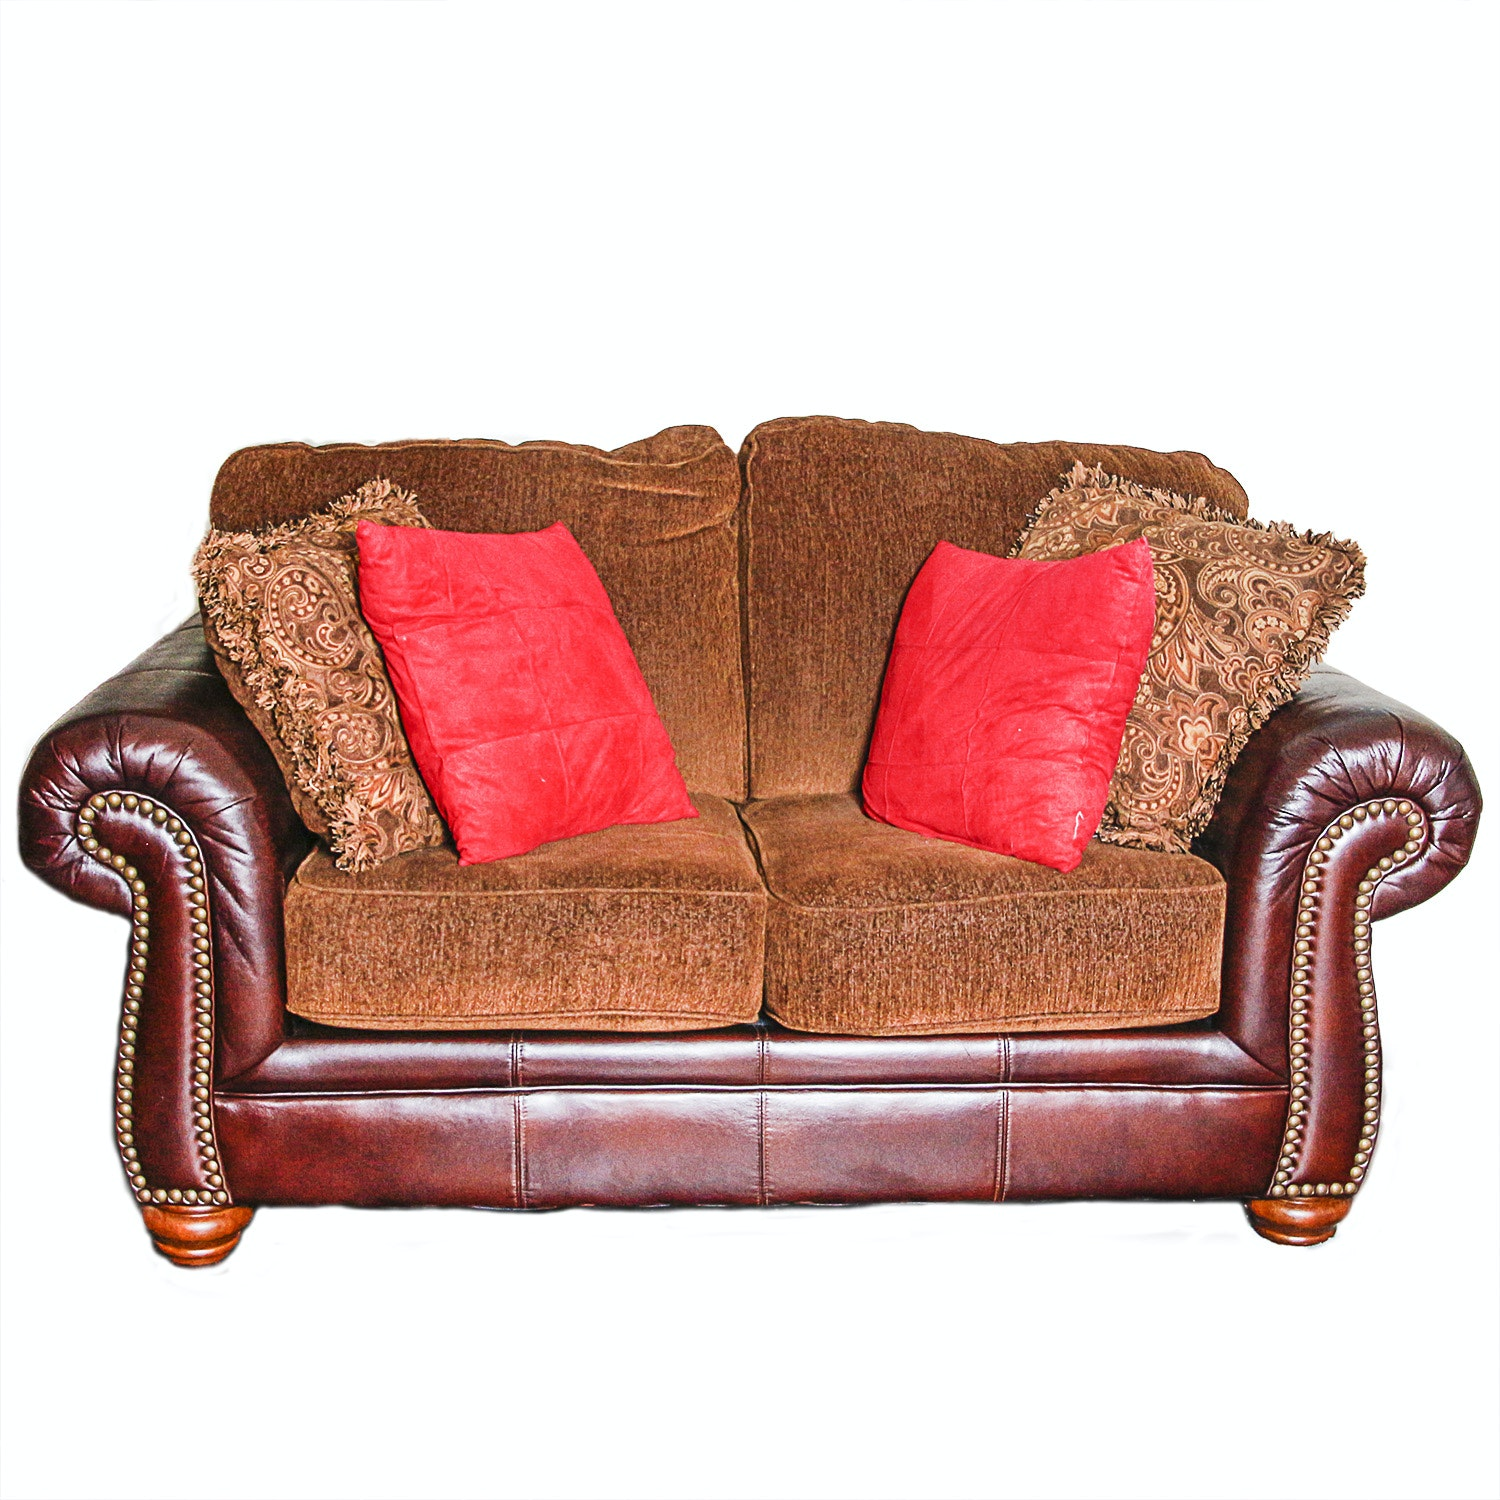 Burgundy Faux Leather Love Seat with Brown-Upholstered Cushions